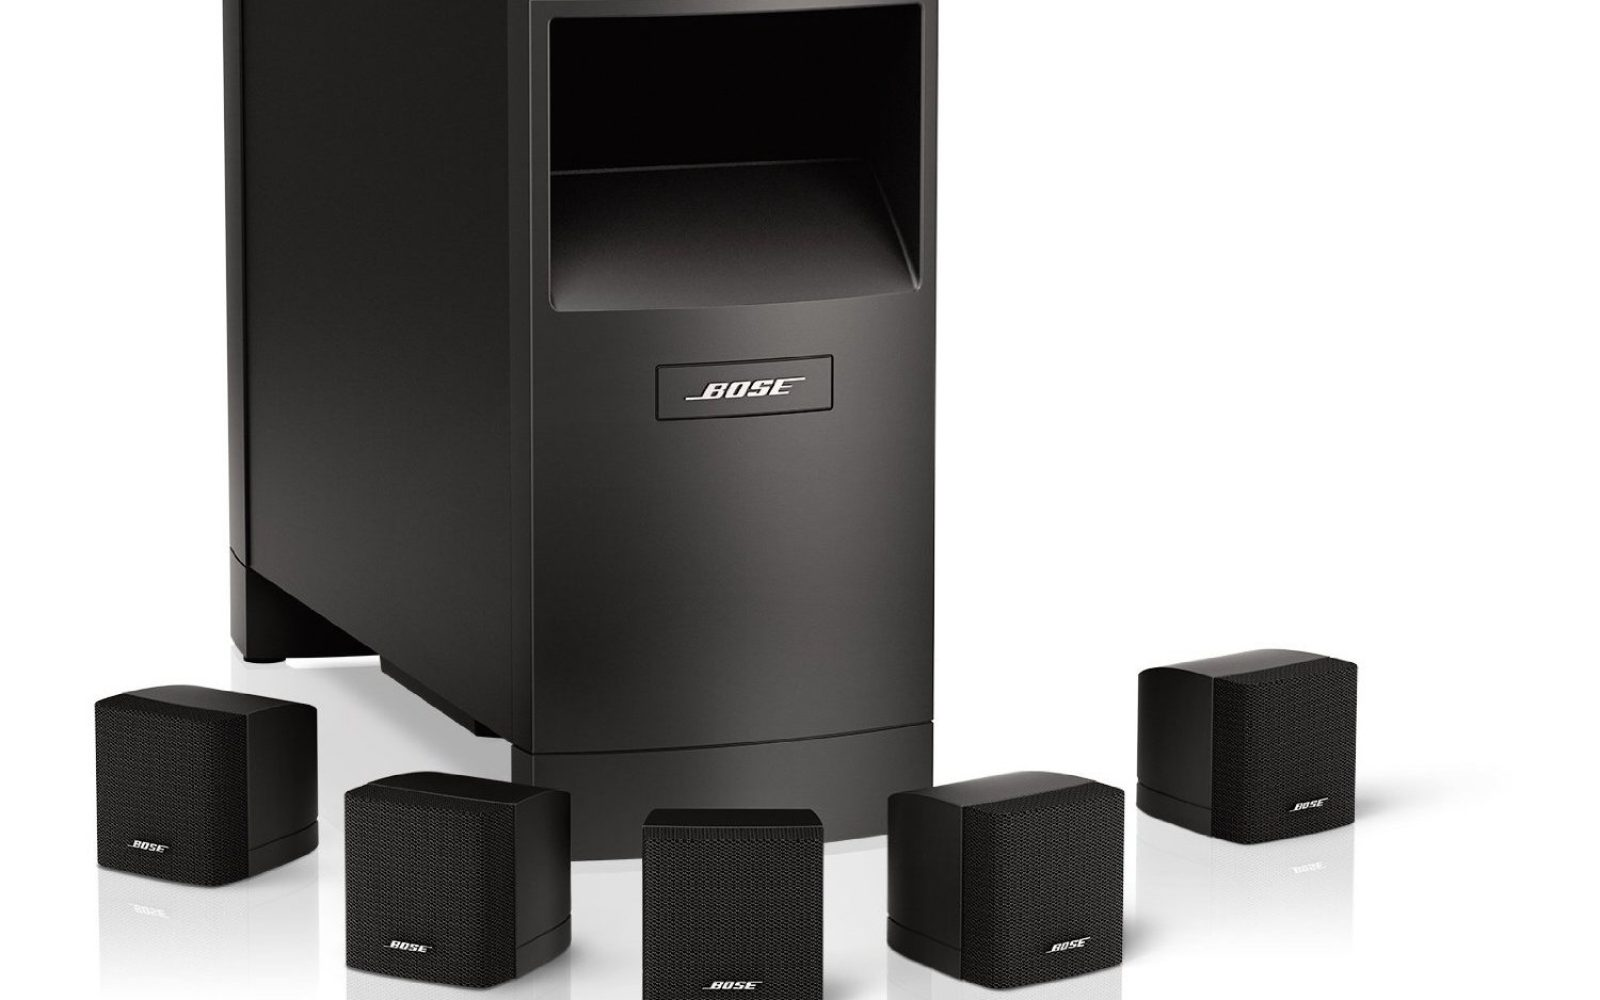 Bose Acoustimass 6 Home 51 Entertainment Speaker System 400 Wiring Shipped 10 Series Iv 650 300 Off